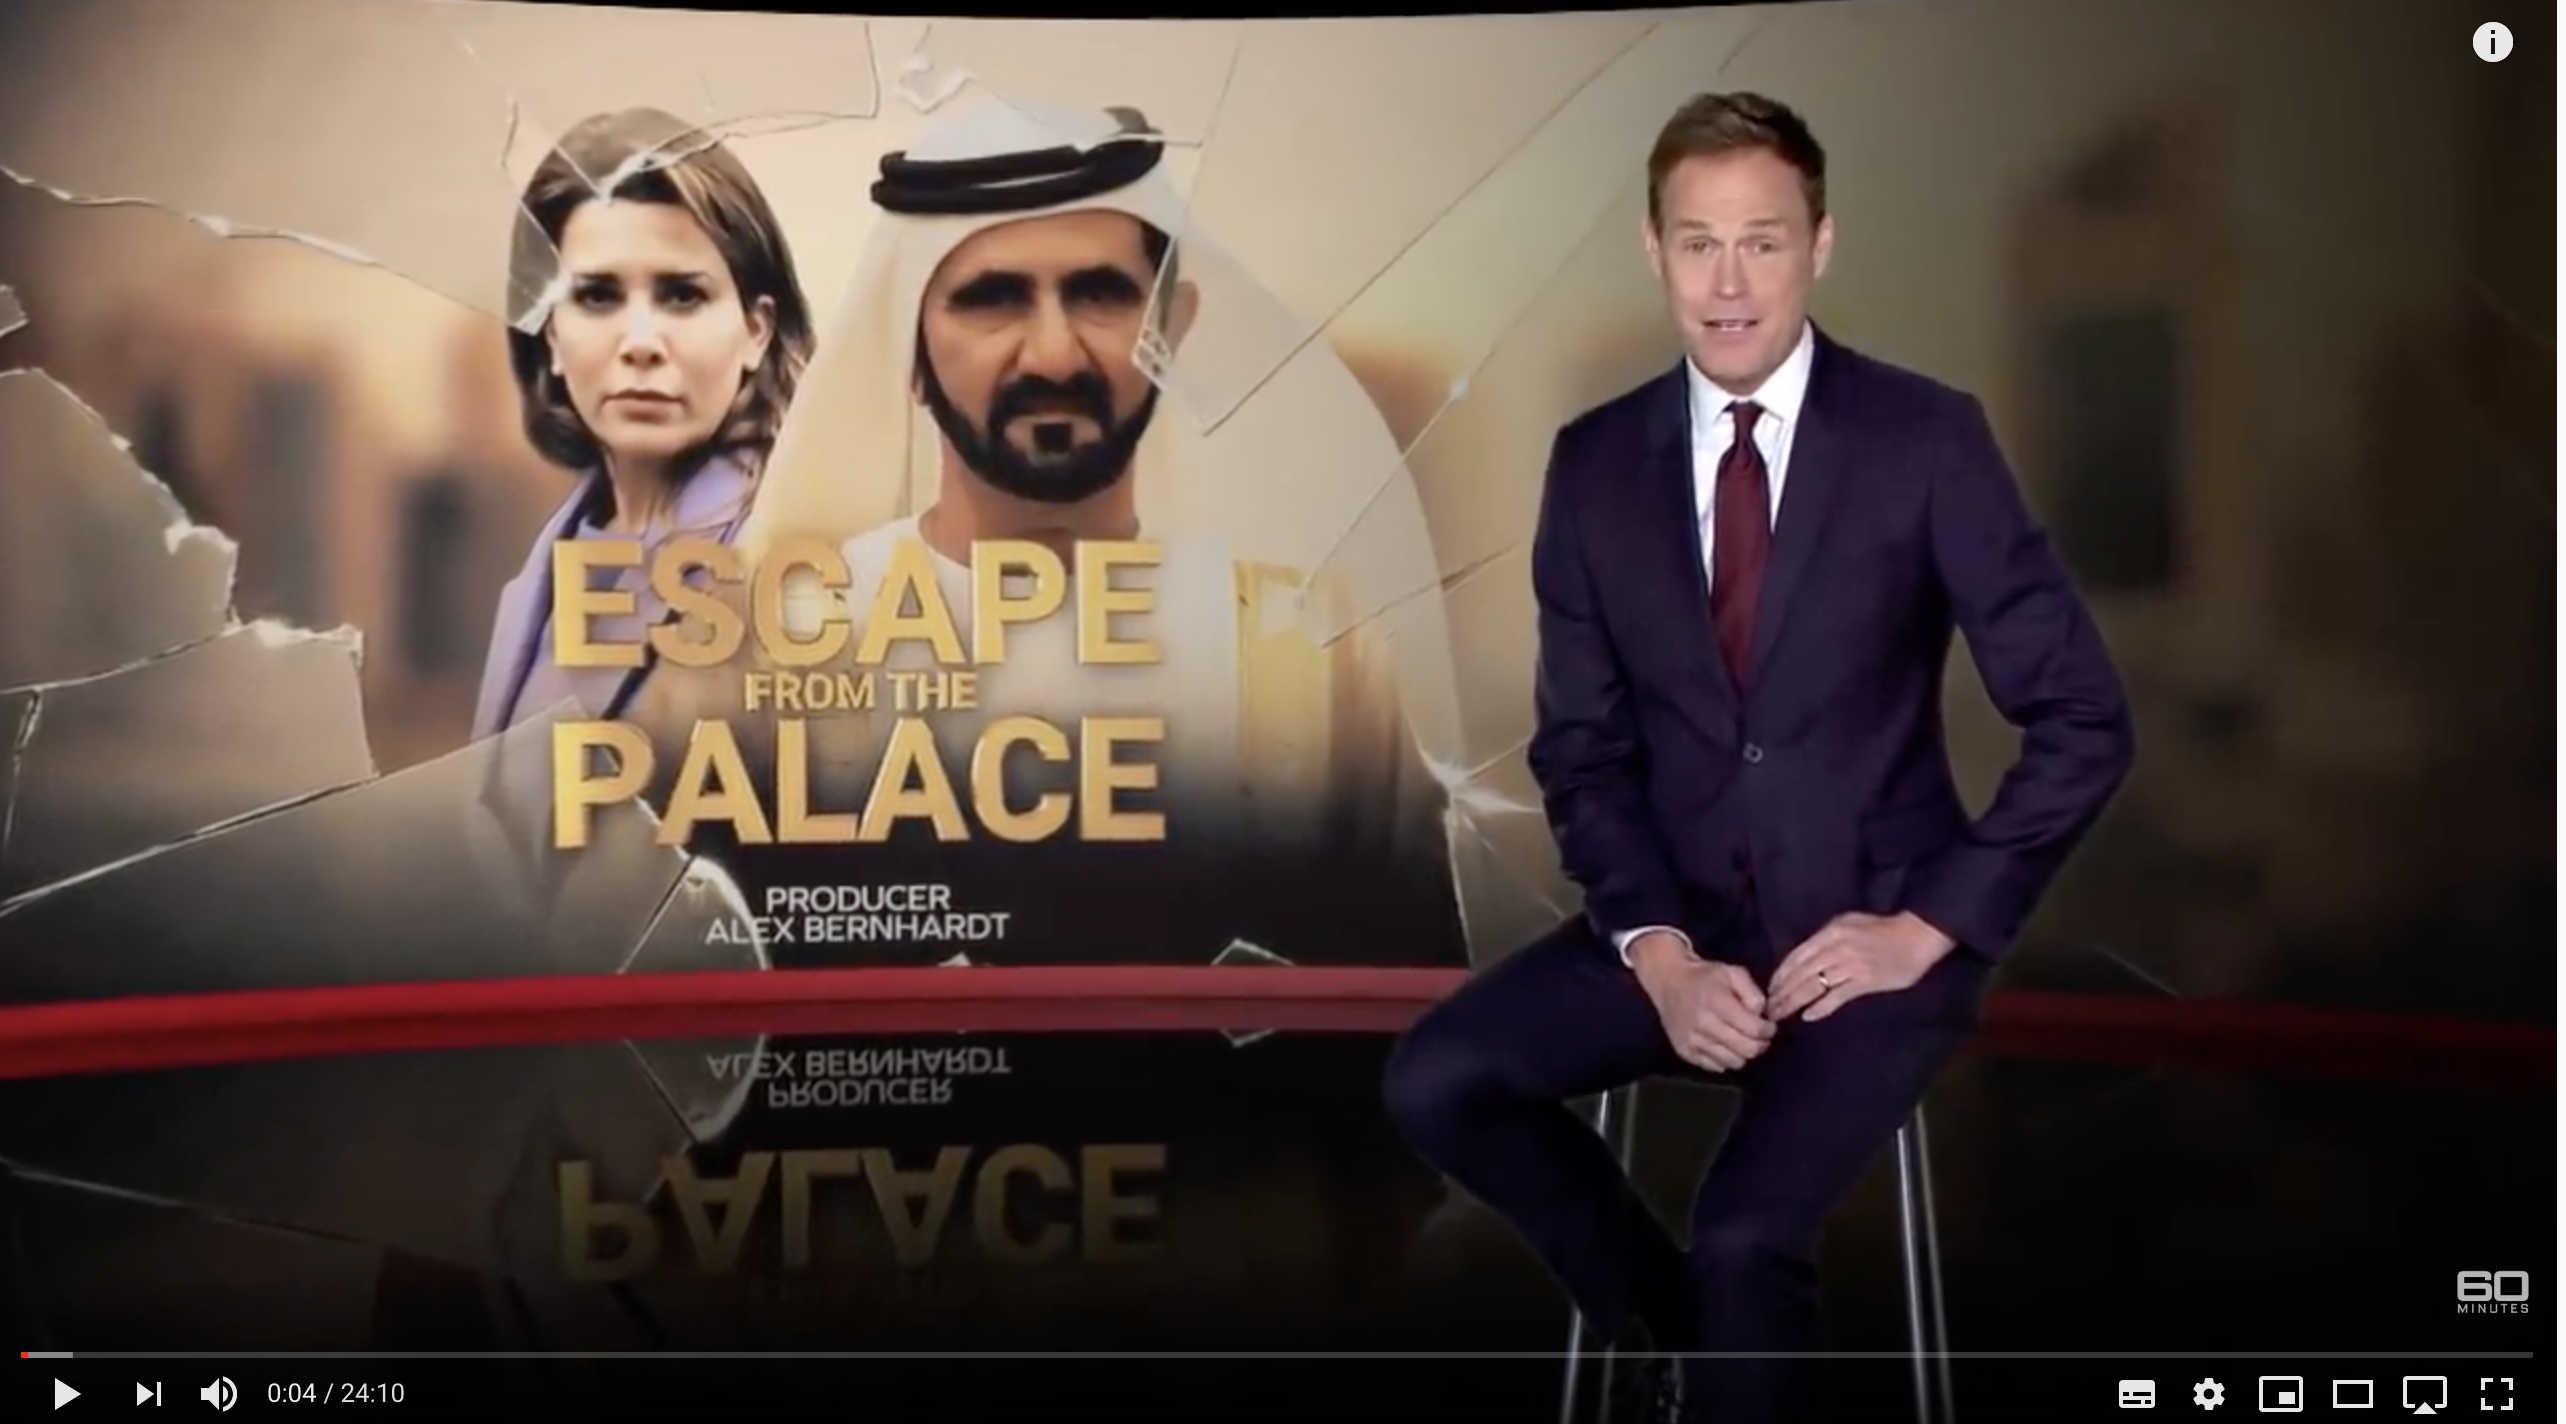 Princess Latifa's Case covered by award winning news show 60 Minutes